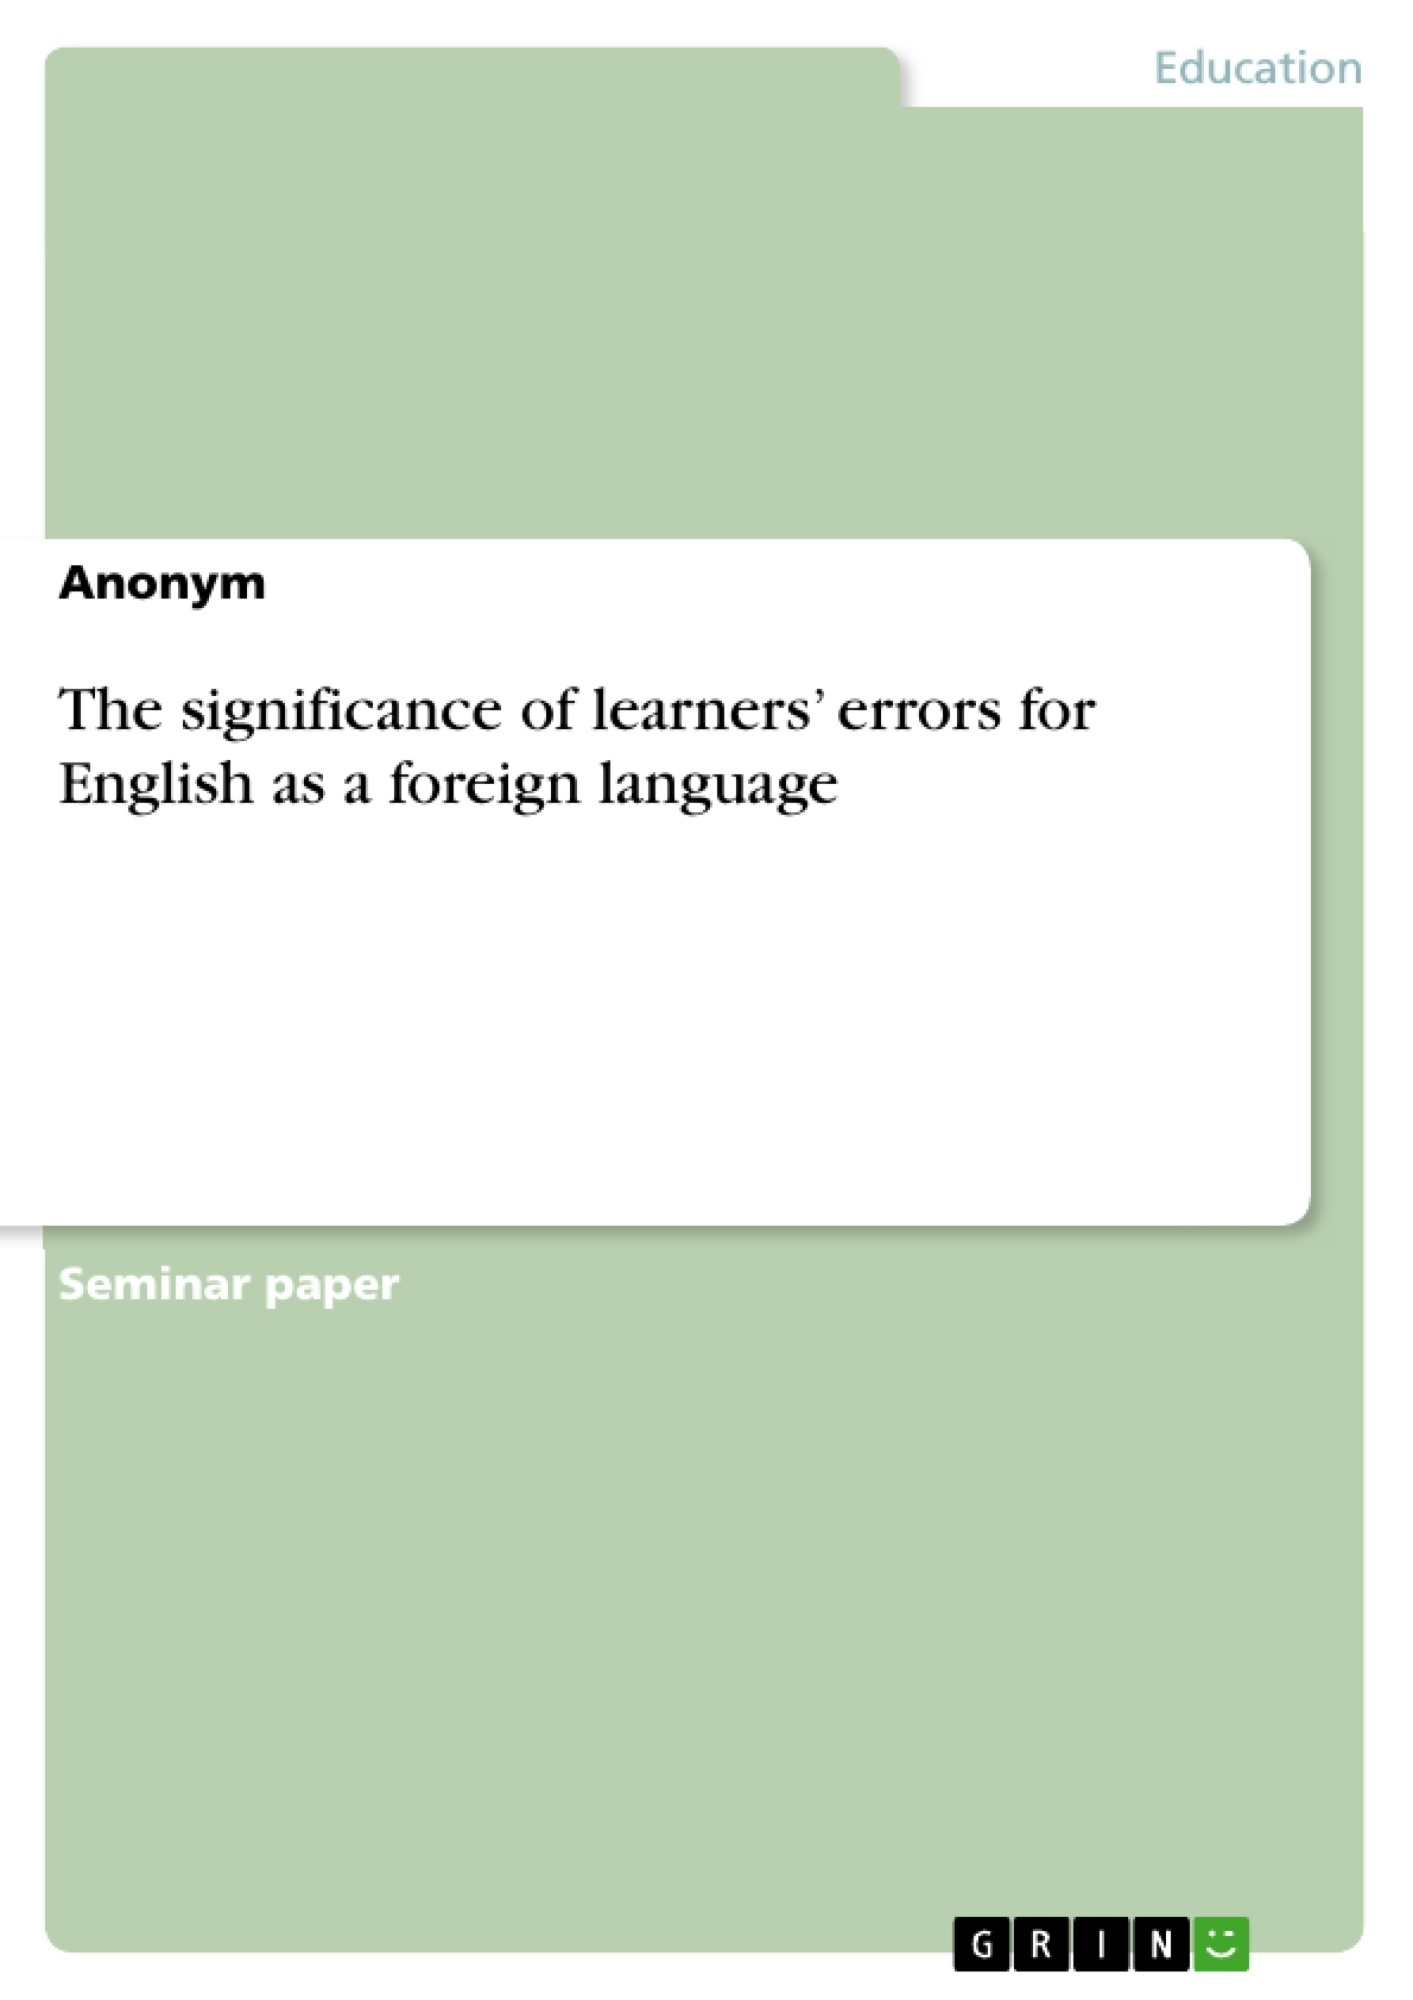 Title: The significance of learners' errors for English as a foreign language